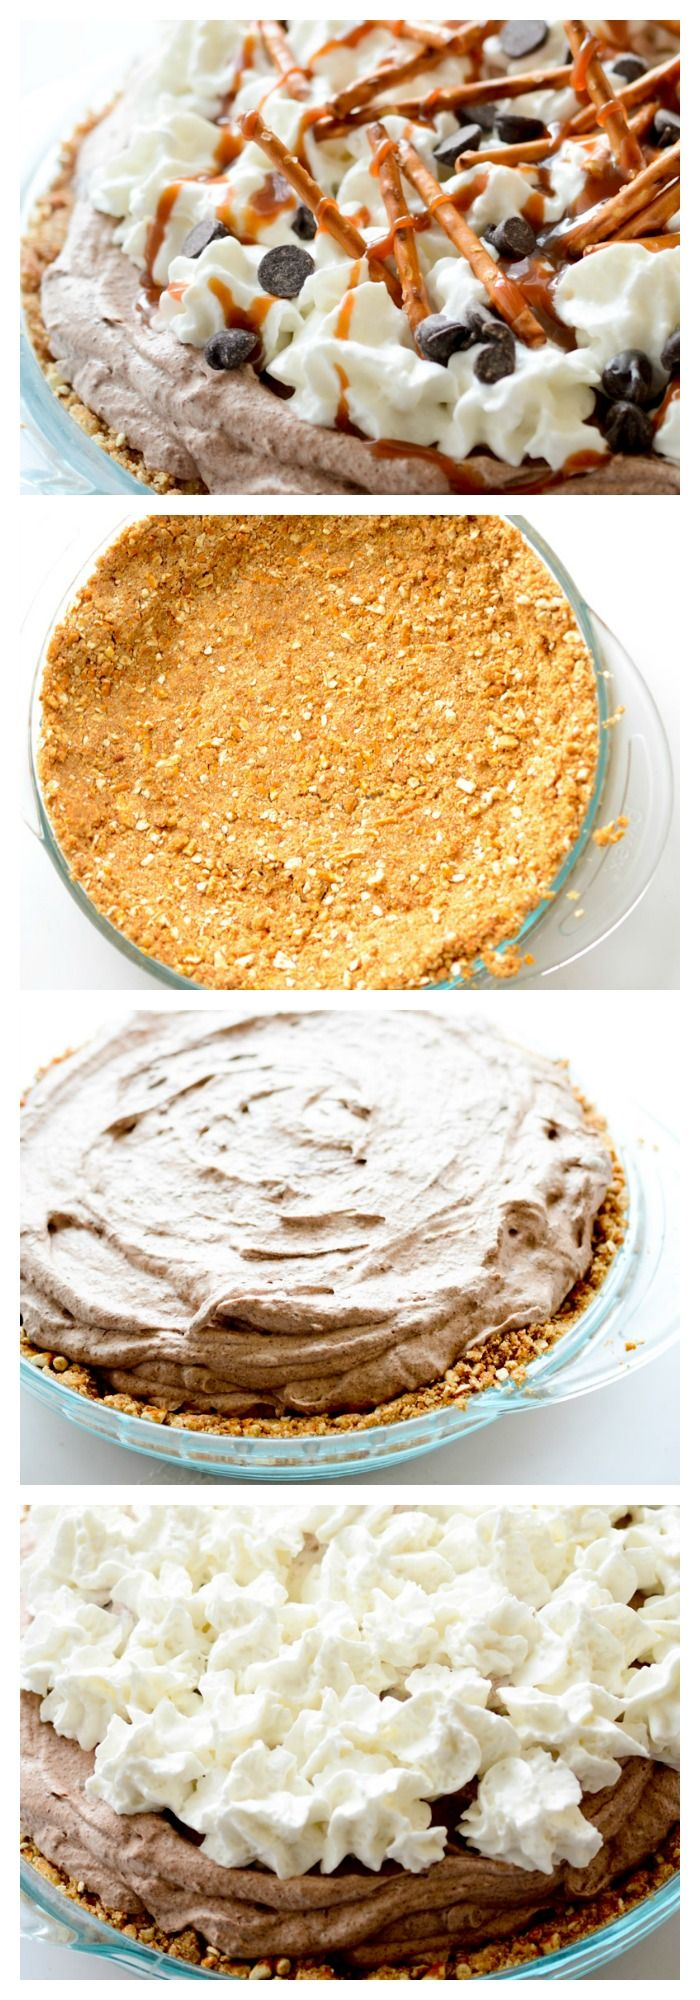 No Bake Chocolate Mousse Pie with Pretzel Crust - Recipe Diaries #pie